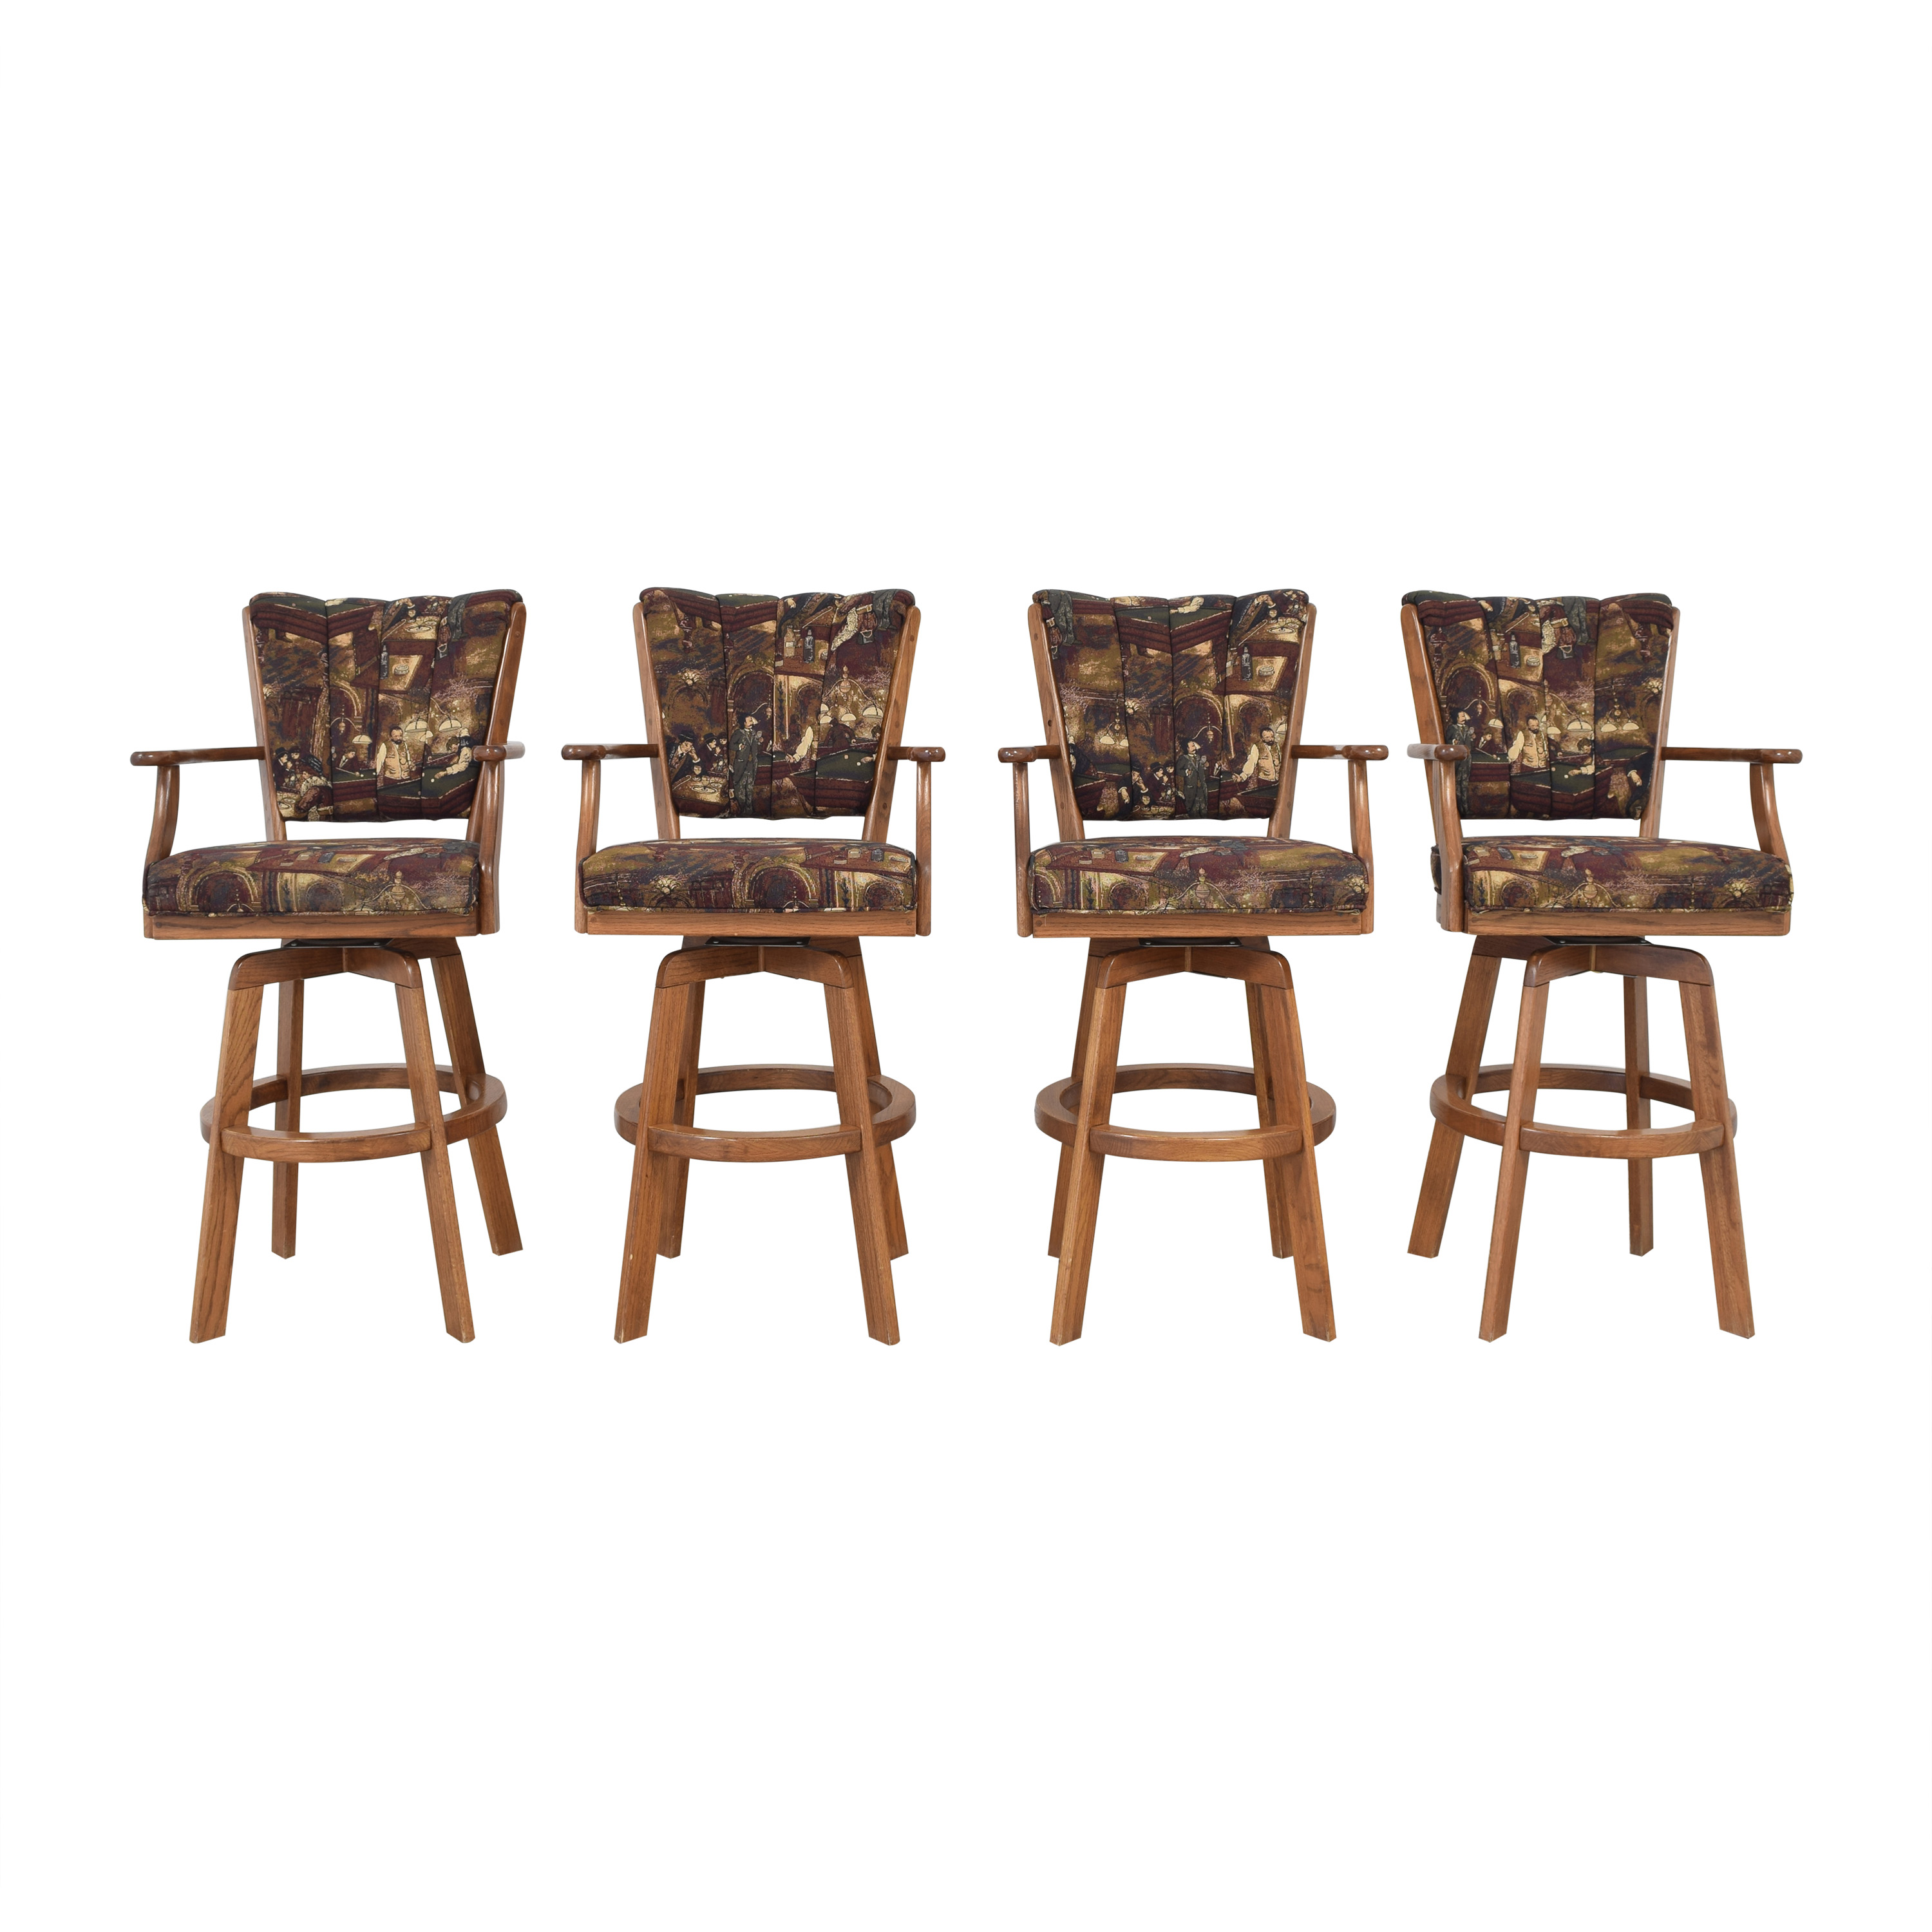 Billiard Bar Stools on sale